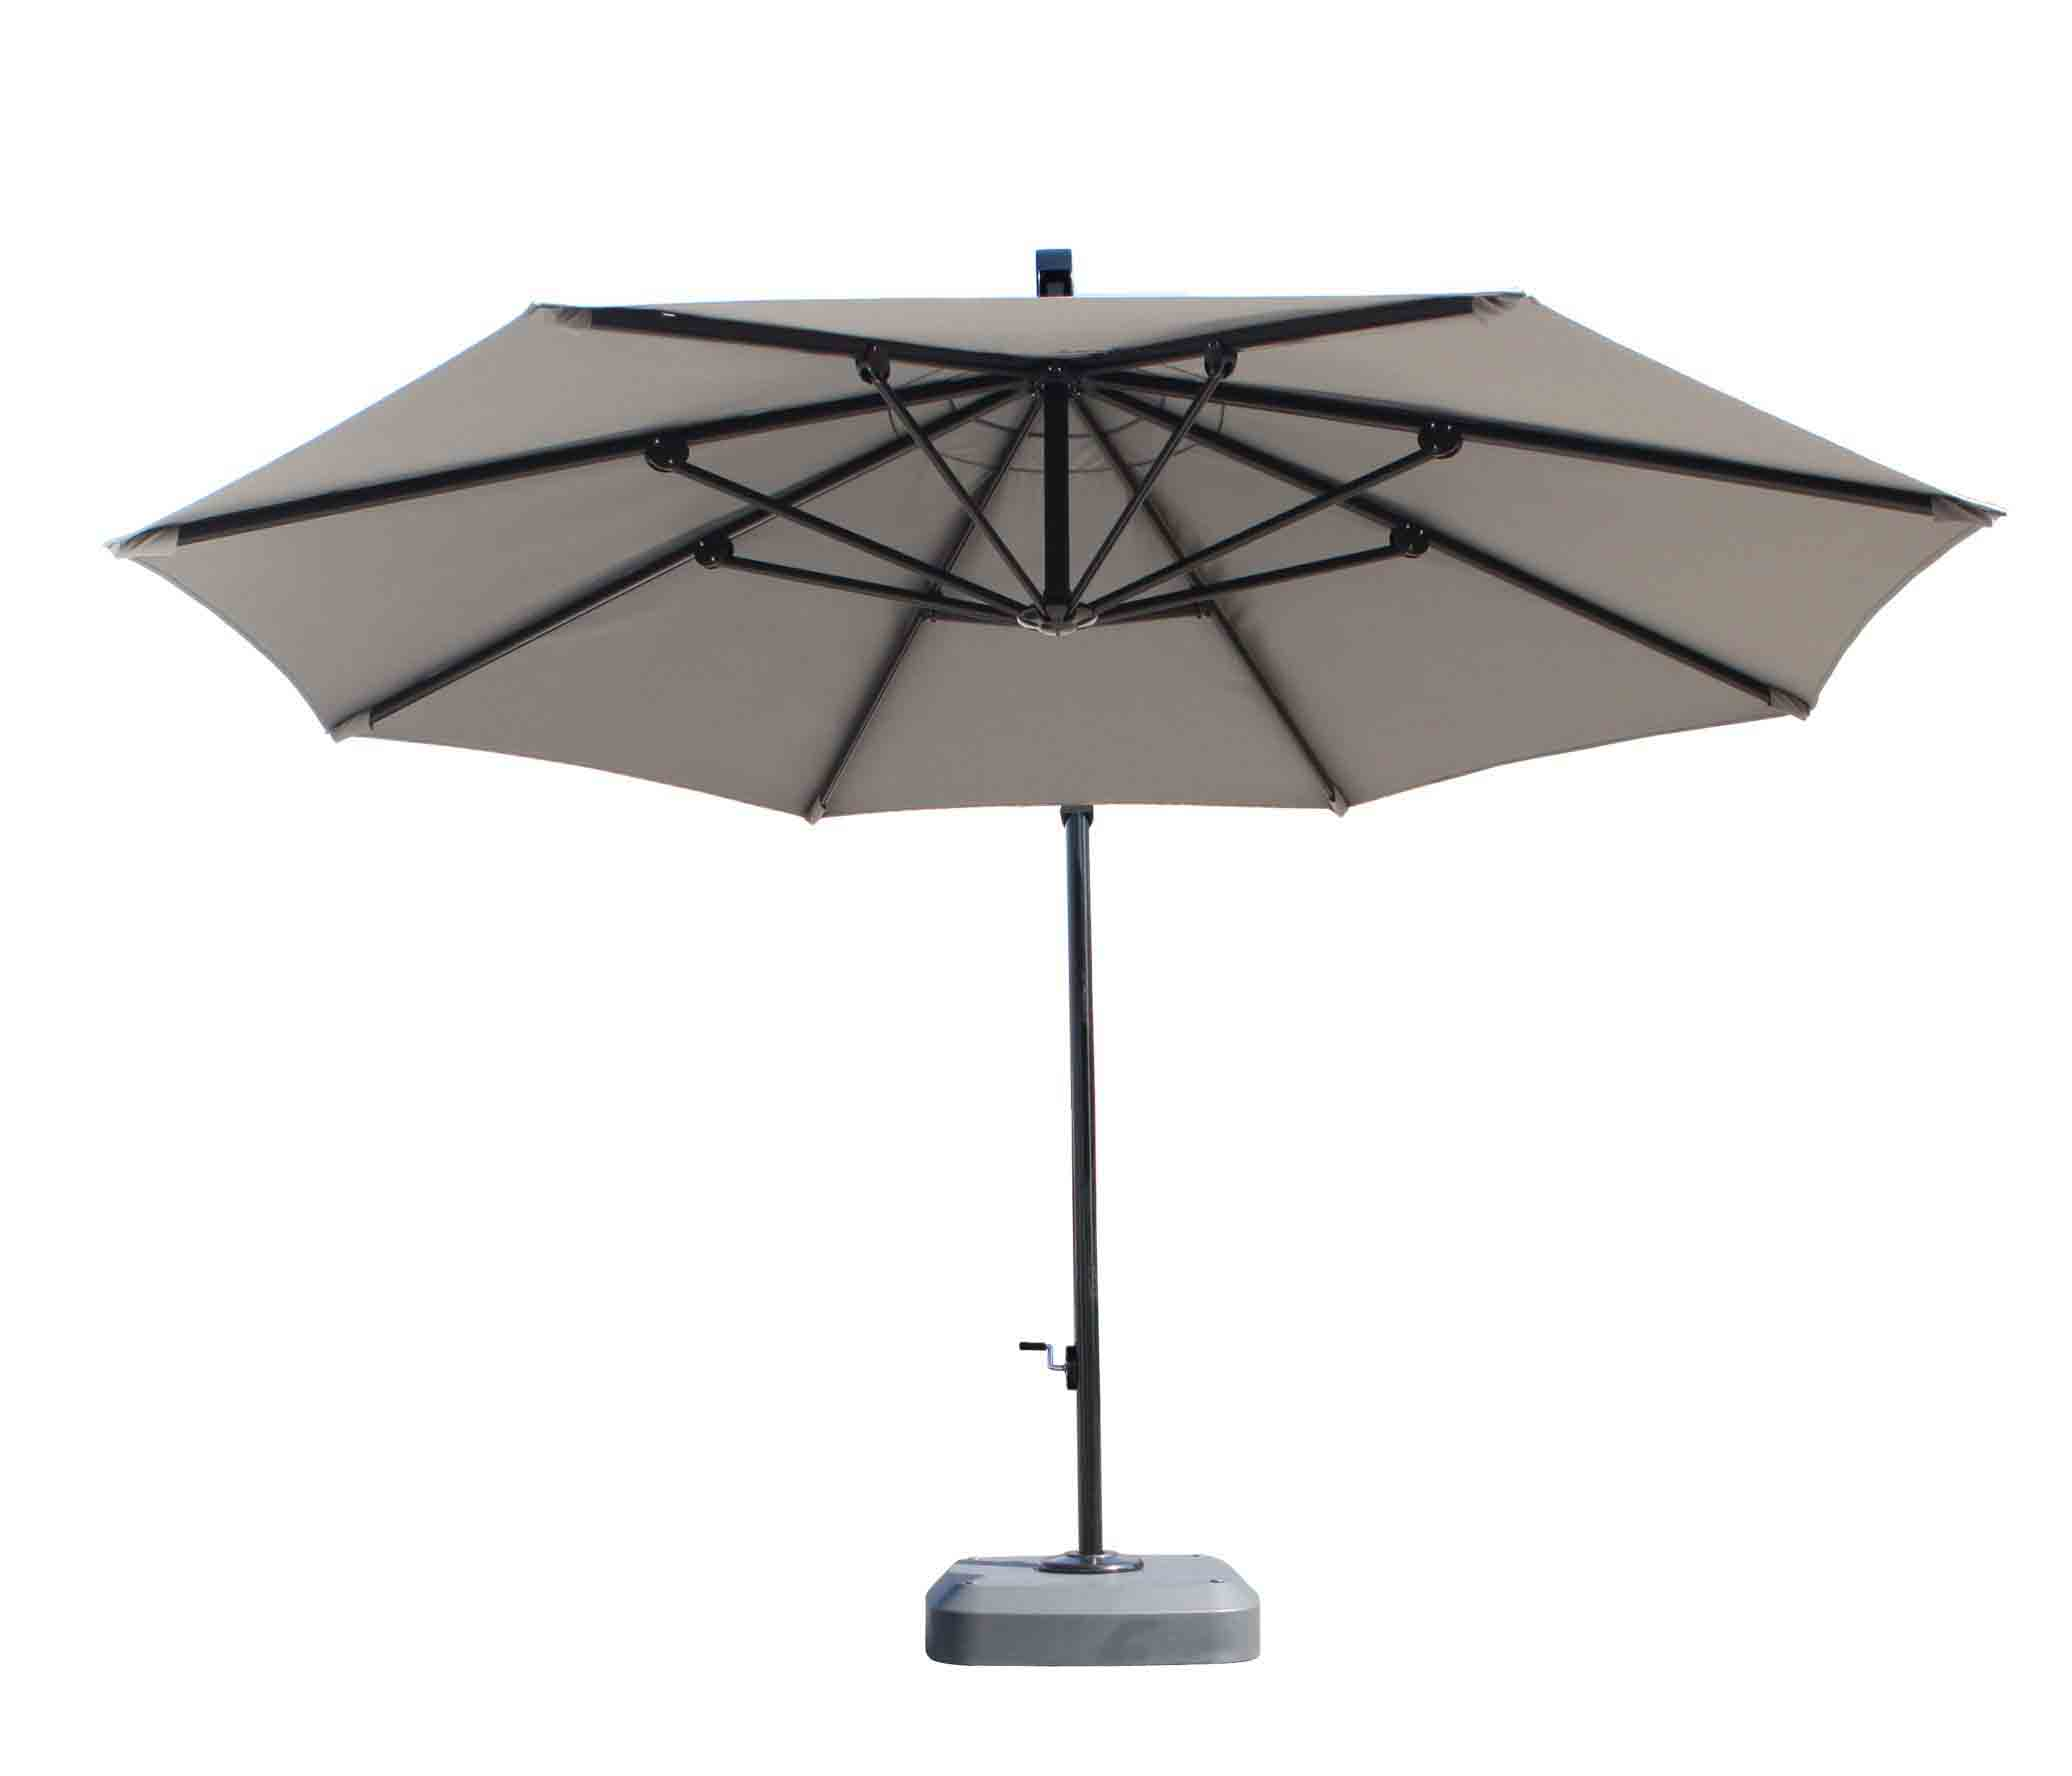 Cabana Coast 11.5′ Cantilever Umbrella